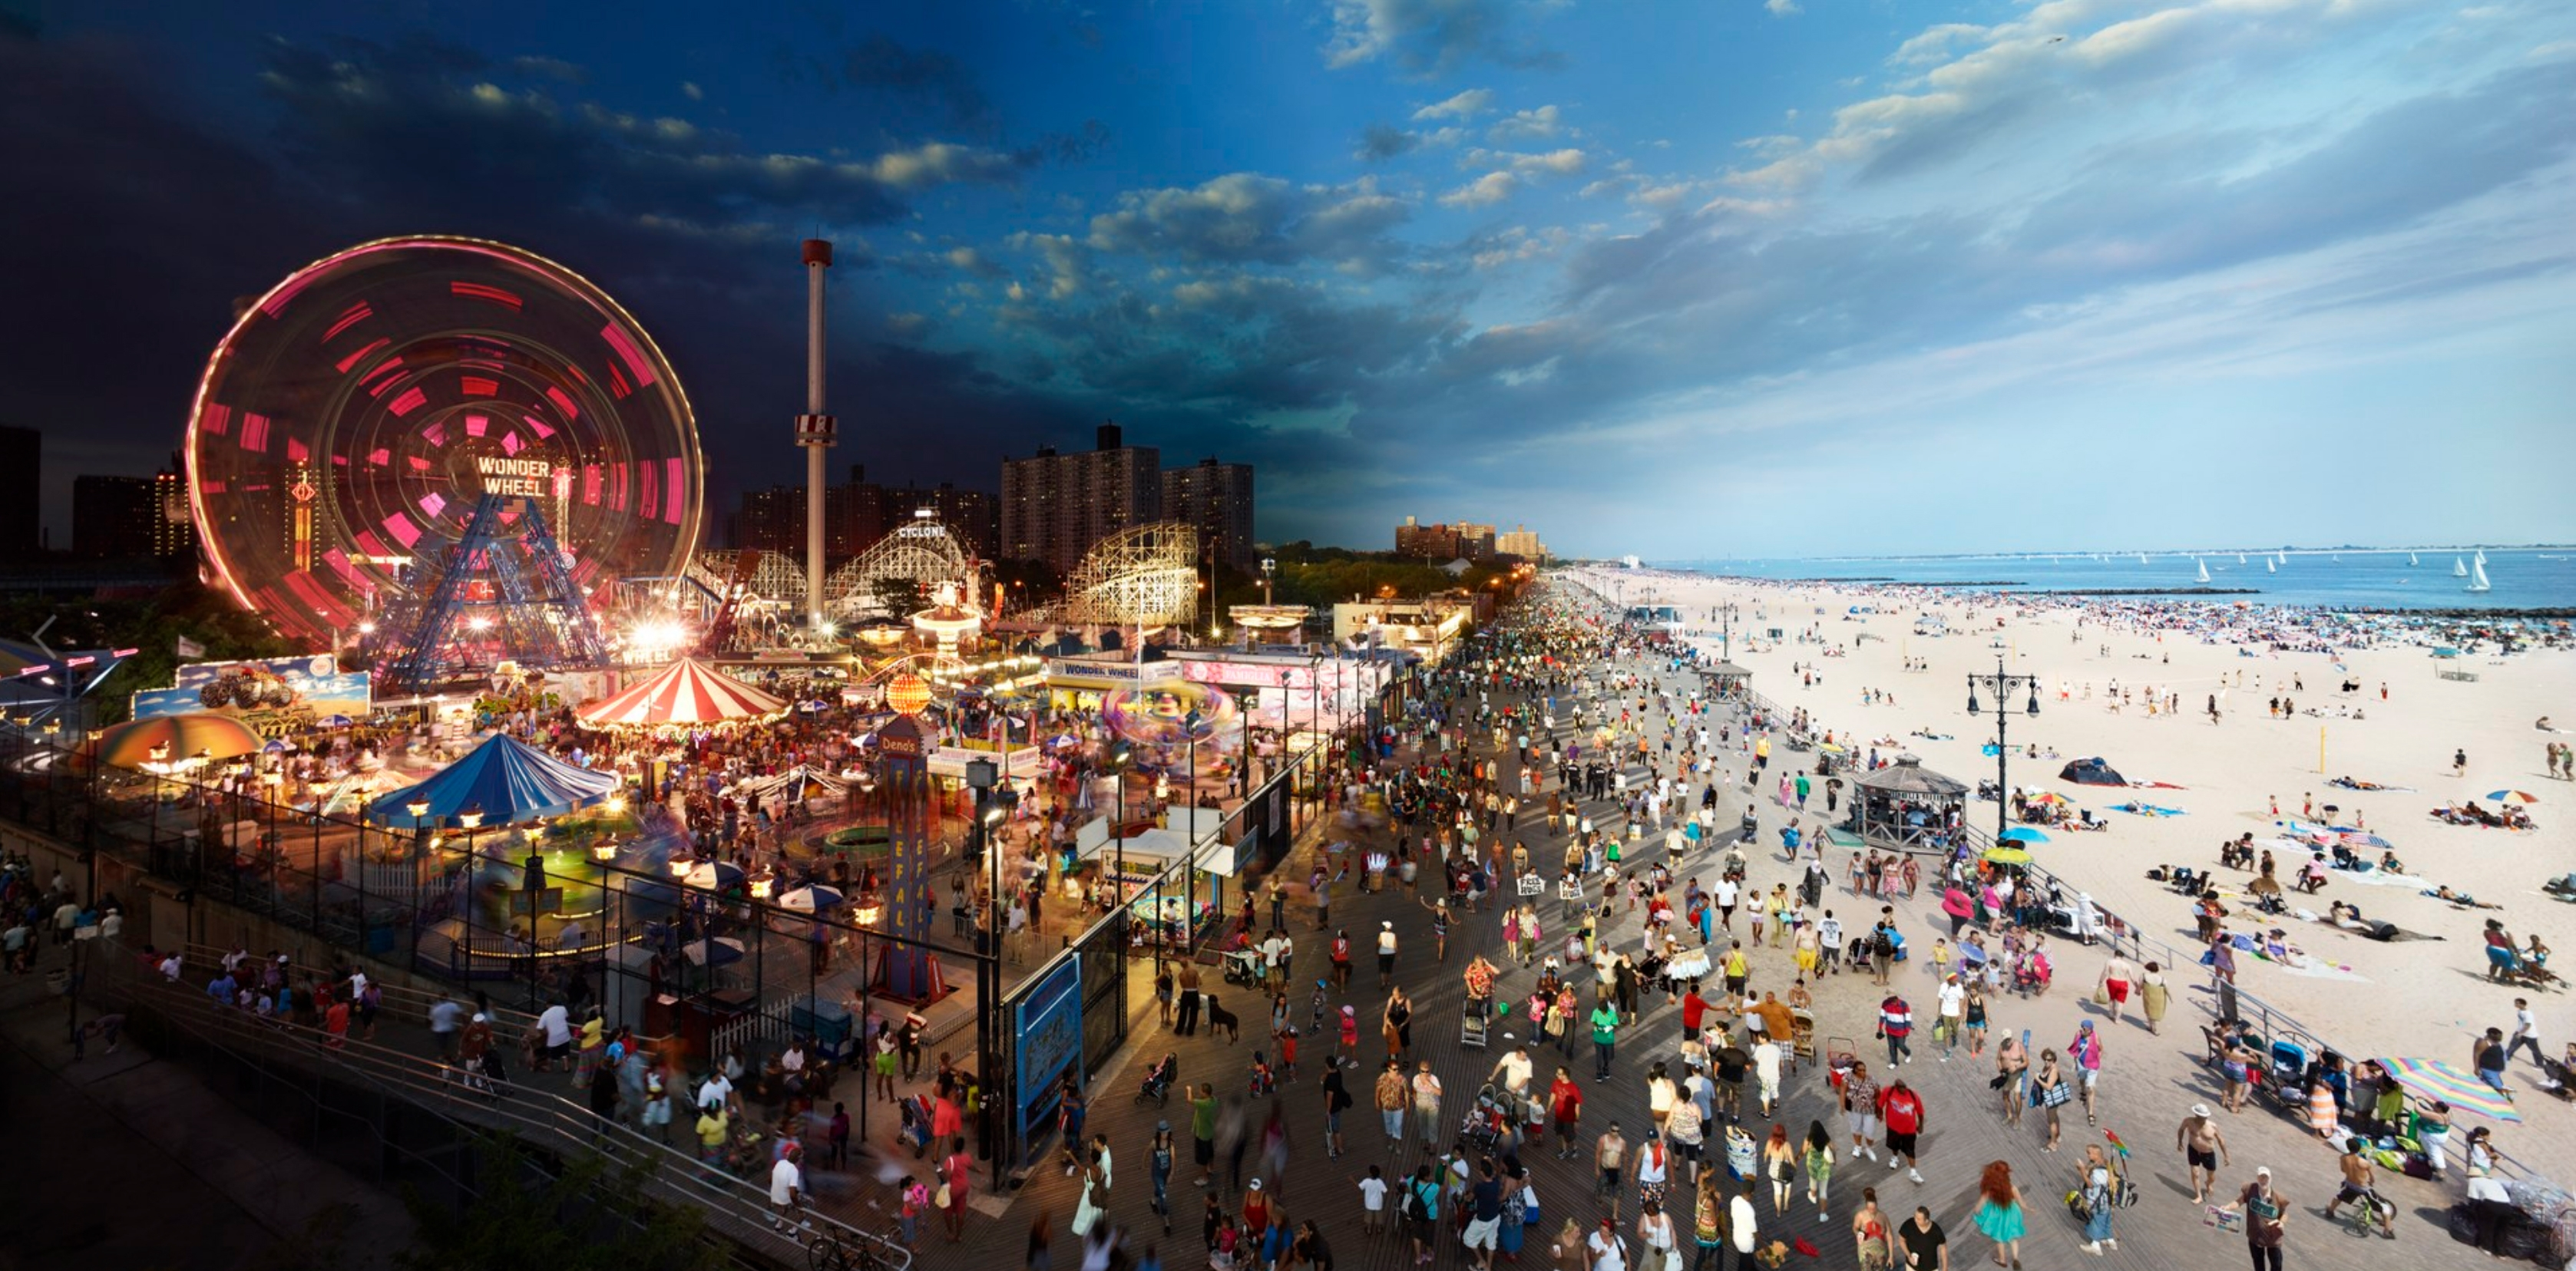 Coney Island Boardwalk, Brooklyn, Day to Night